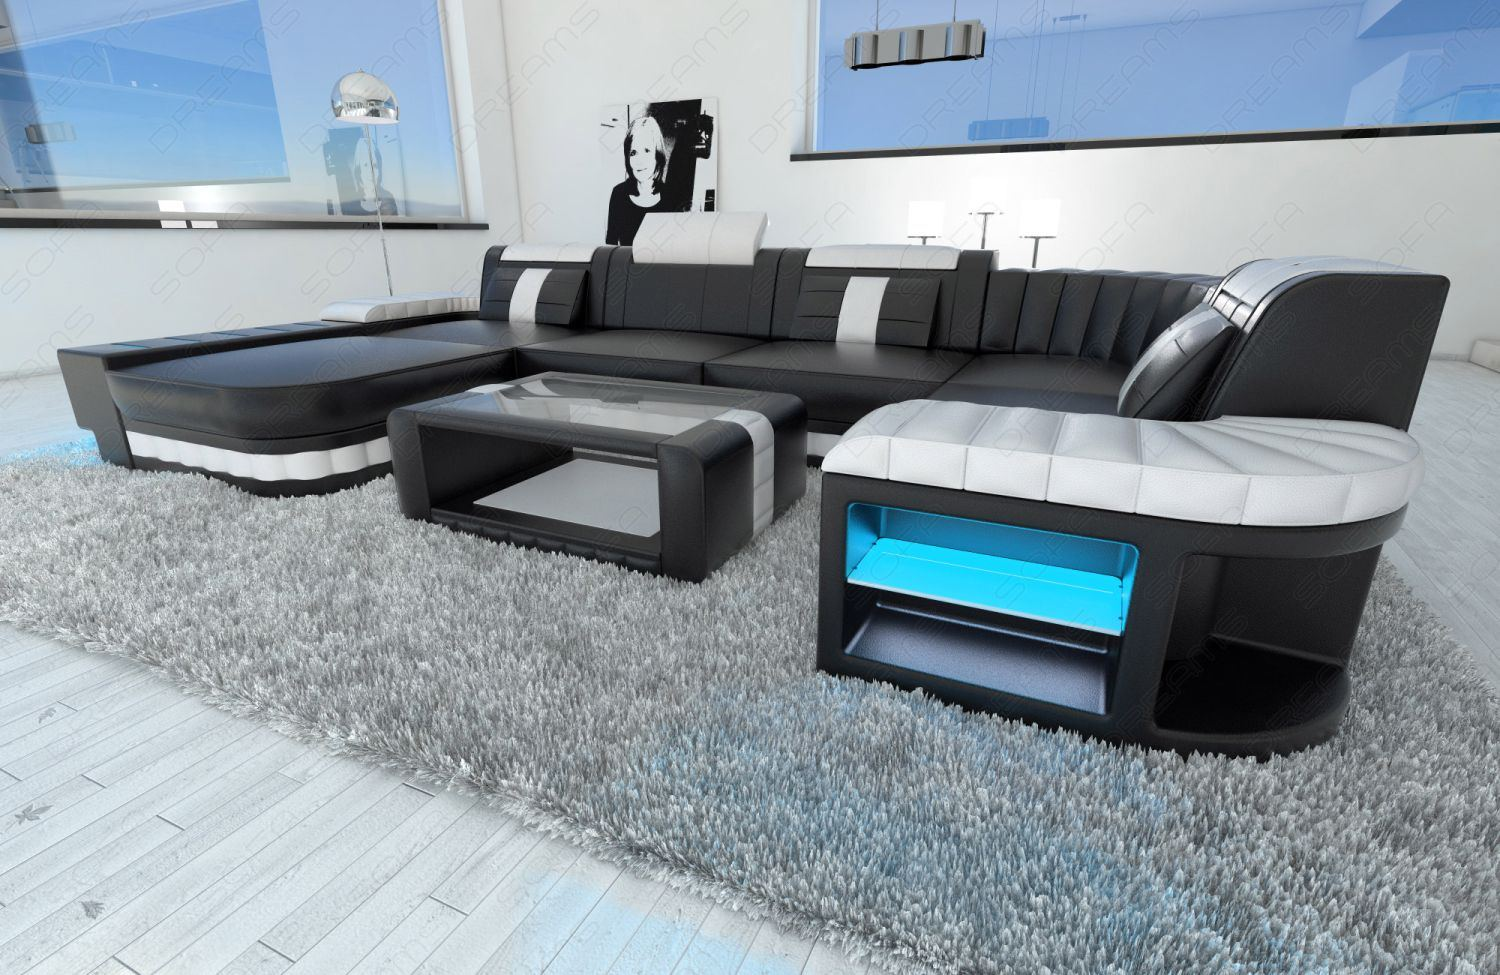 design sectional sofa bellagio led u shape black white ebay. Black Bedroom Furniture Sets. Home Design Ideas